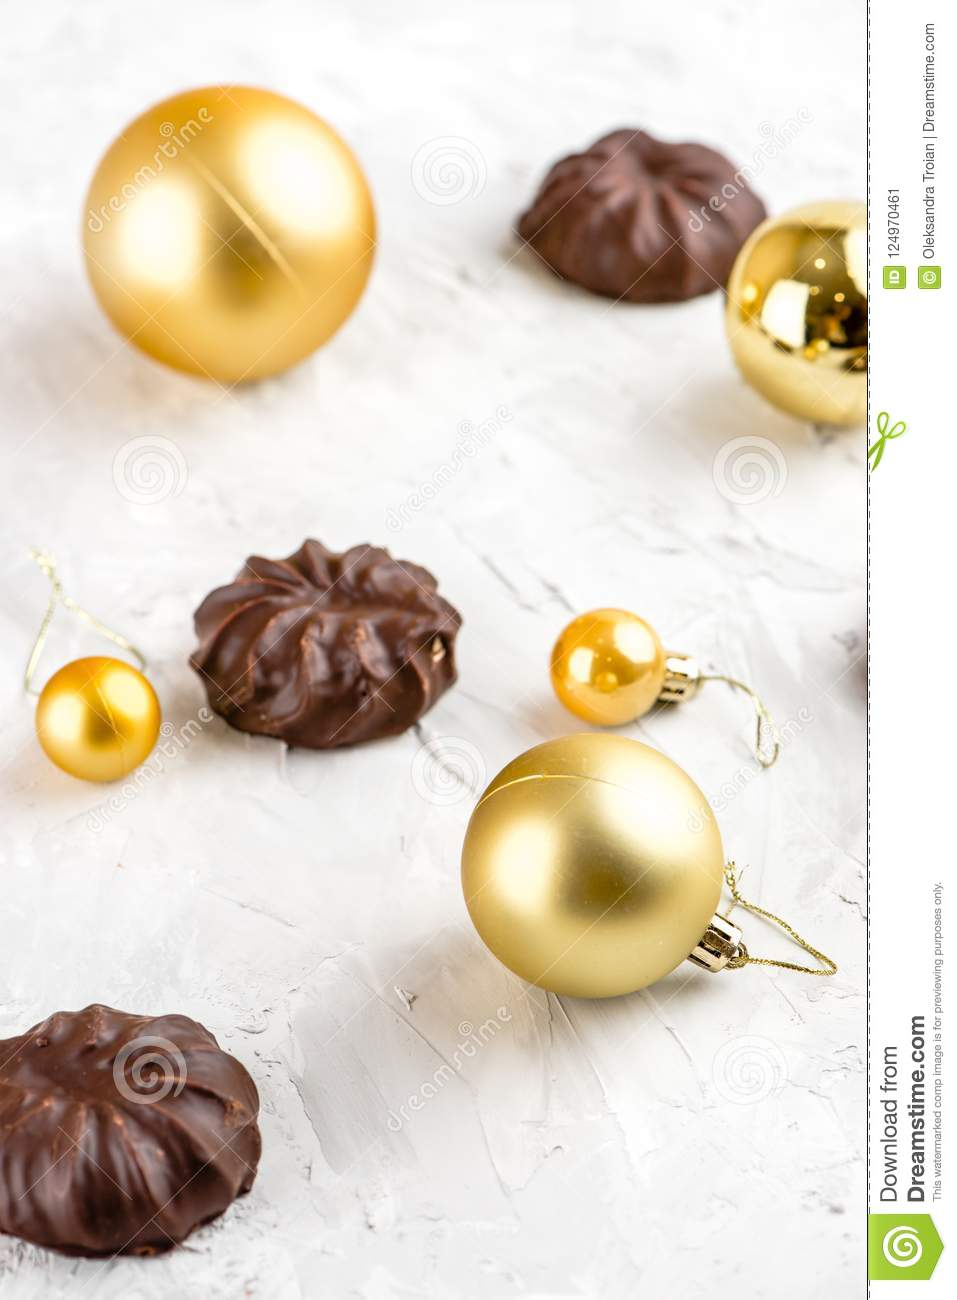 Three dark chocolate-coated zefir top view isolated on white background airy with christmas ornaments